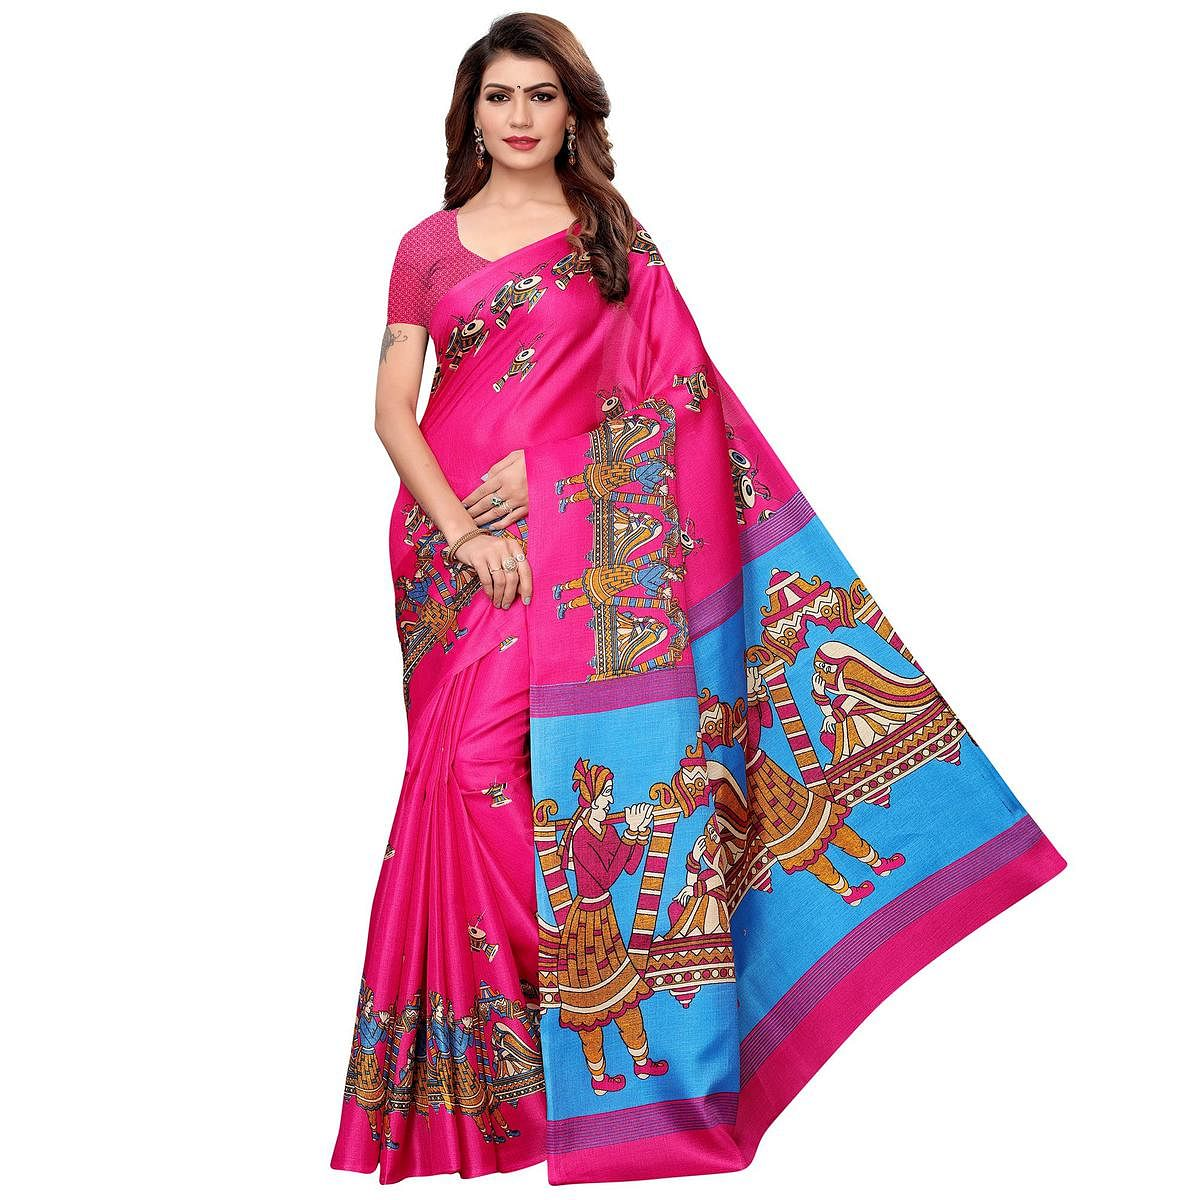 Hypnotic Pink Colored Festive Wear Khadi Silk Saree